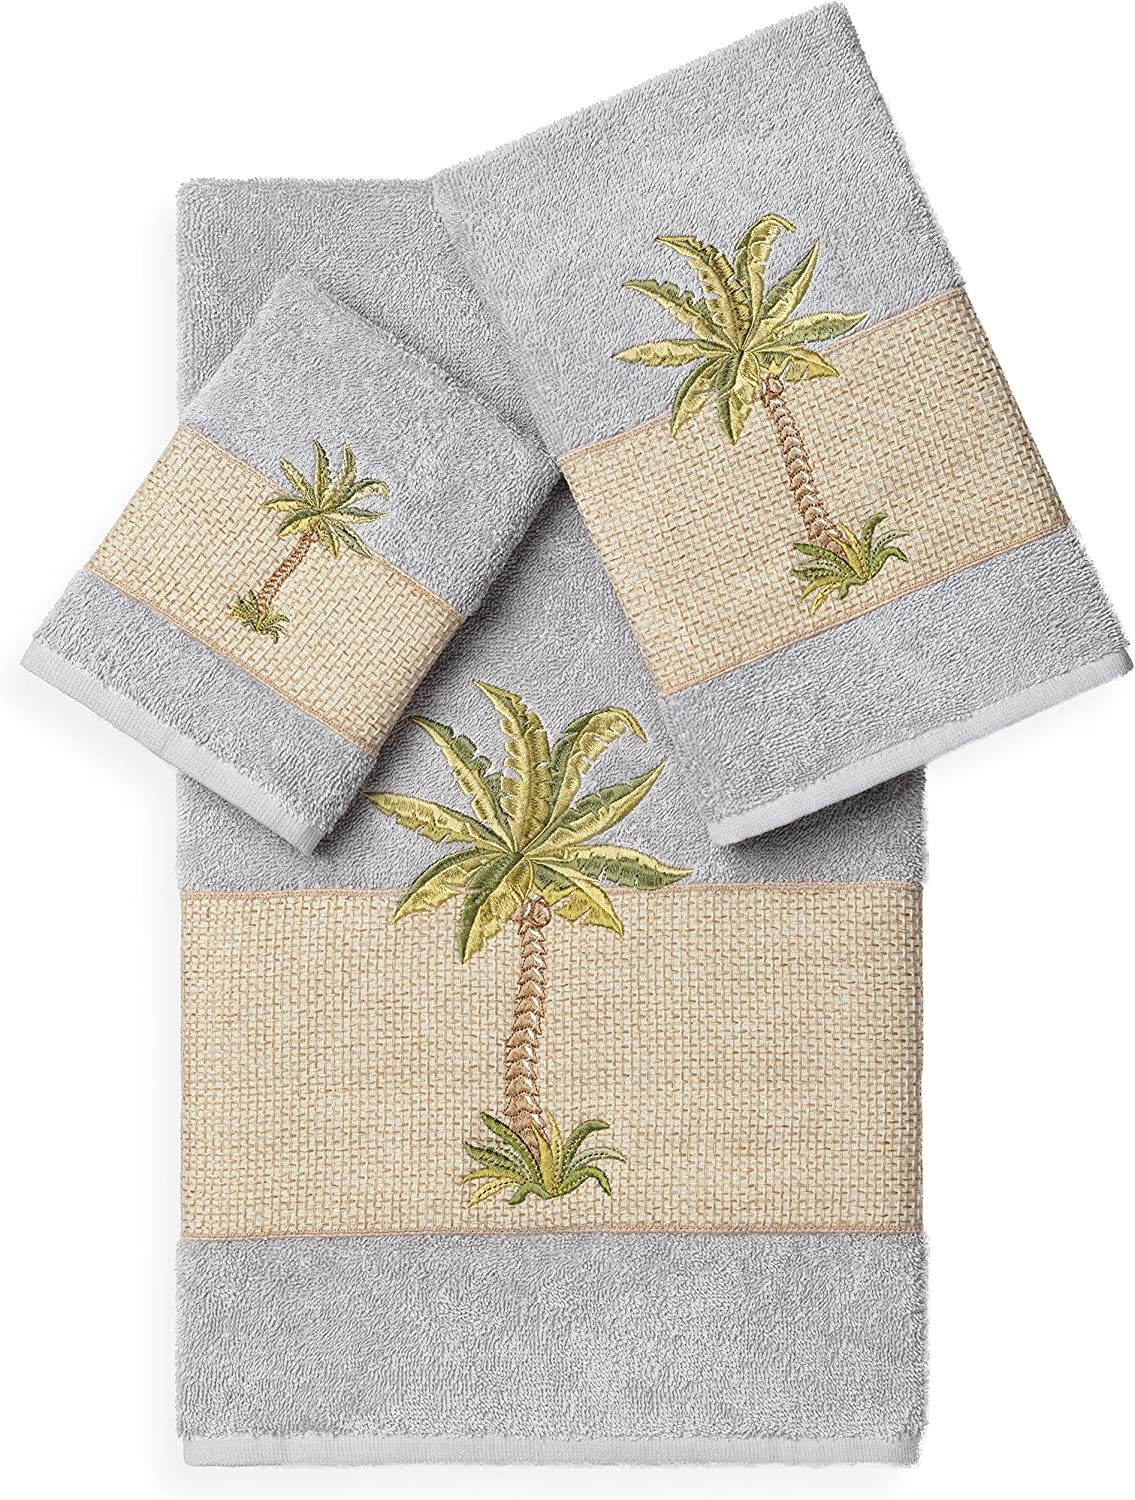 Linum Daily bargain sale Home Textiles Serenity Ranking integrated 1st place 3Pc Set Embellished Gr Light Towel